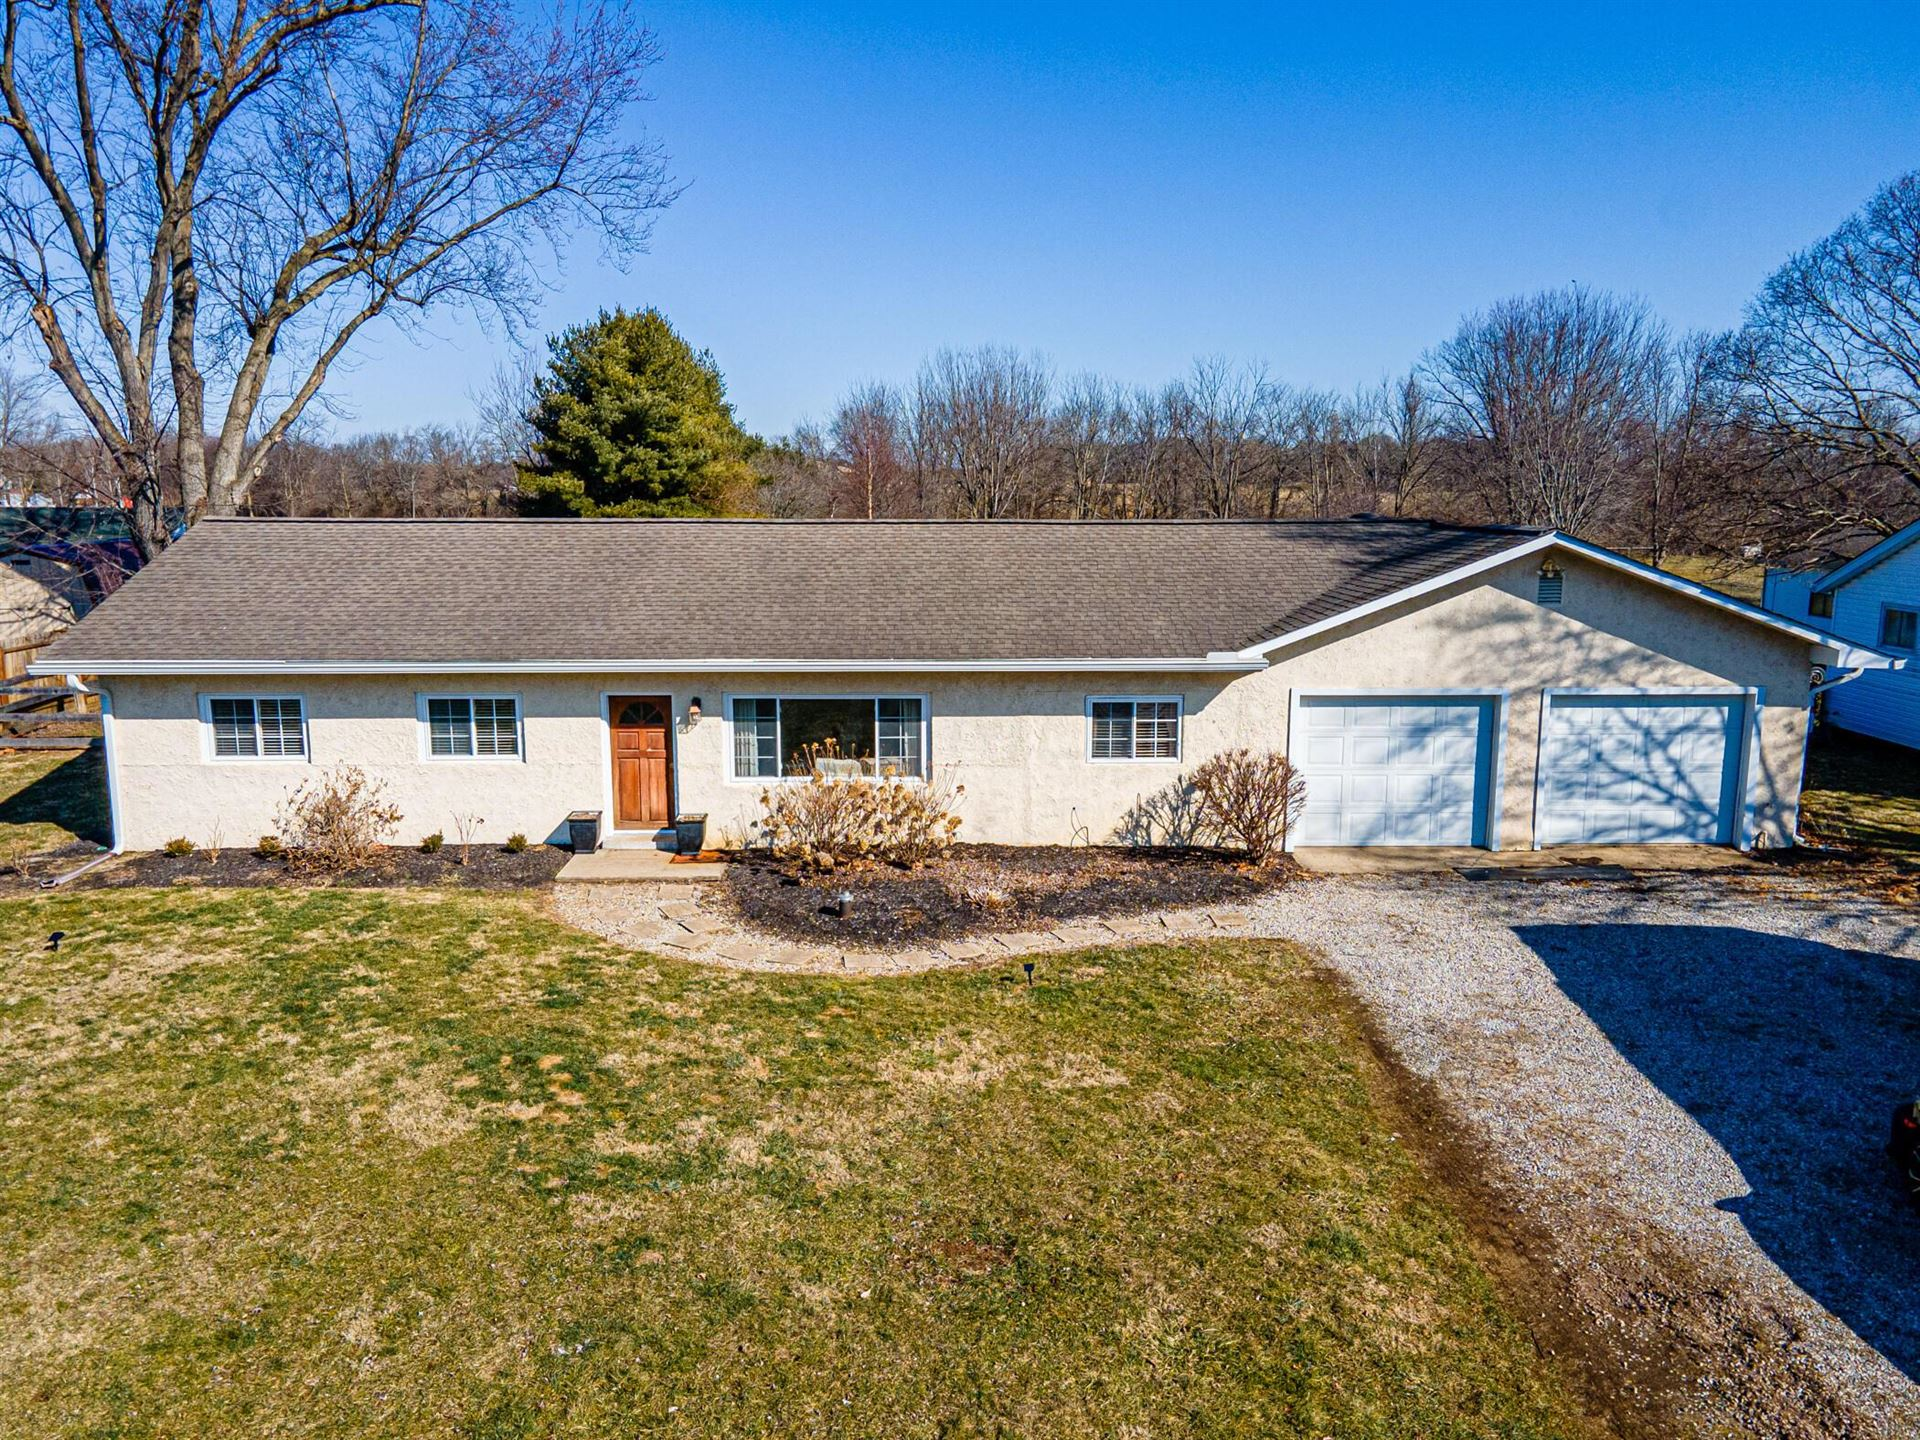 Photo for 622 Swackhammer Road, Circleville, OH 43113 (MLS # 221006353)